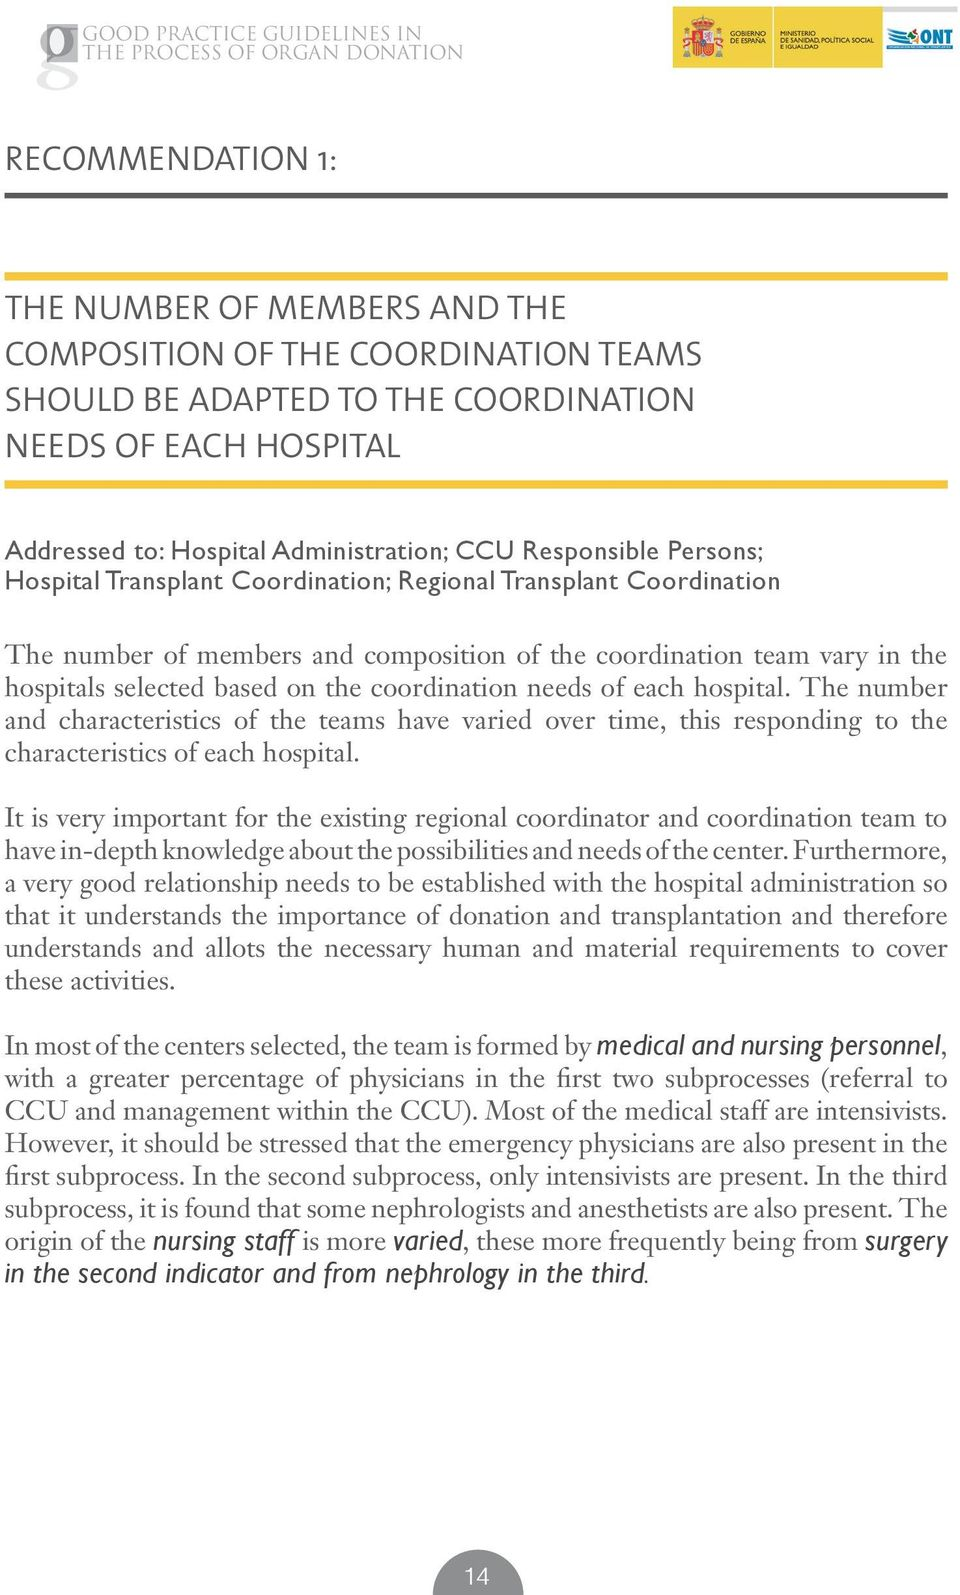 coordination needs of each hospital. The number and characteristics of the teams have varied over time, this responding to the characteristics of each hospital.